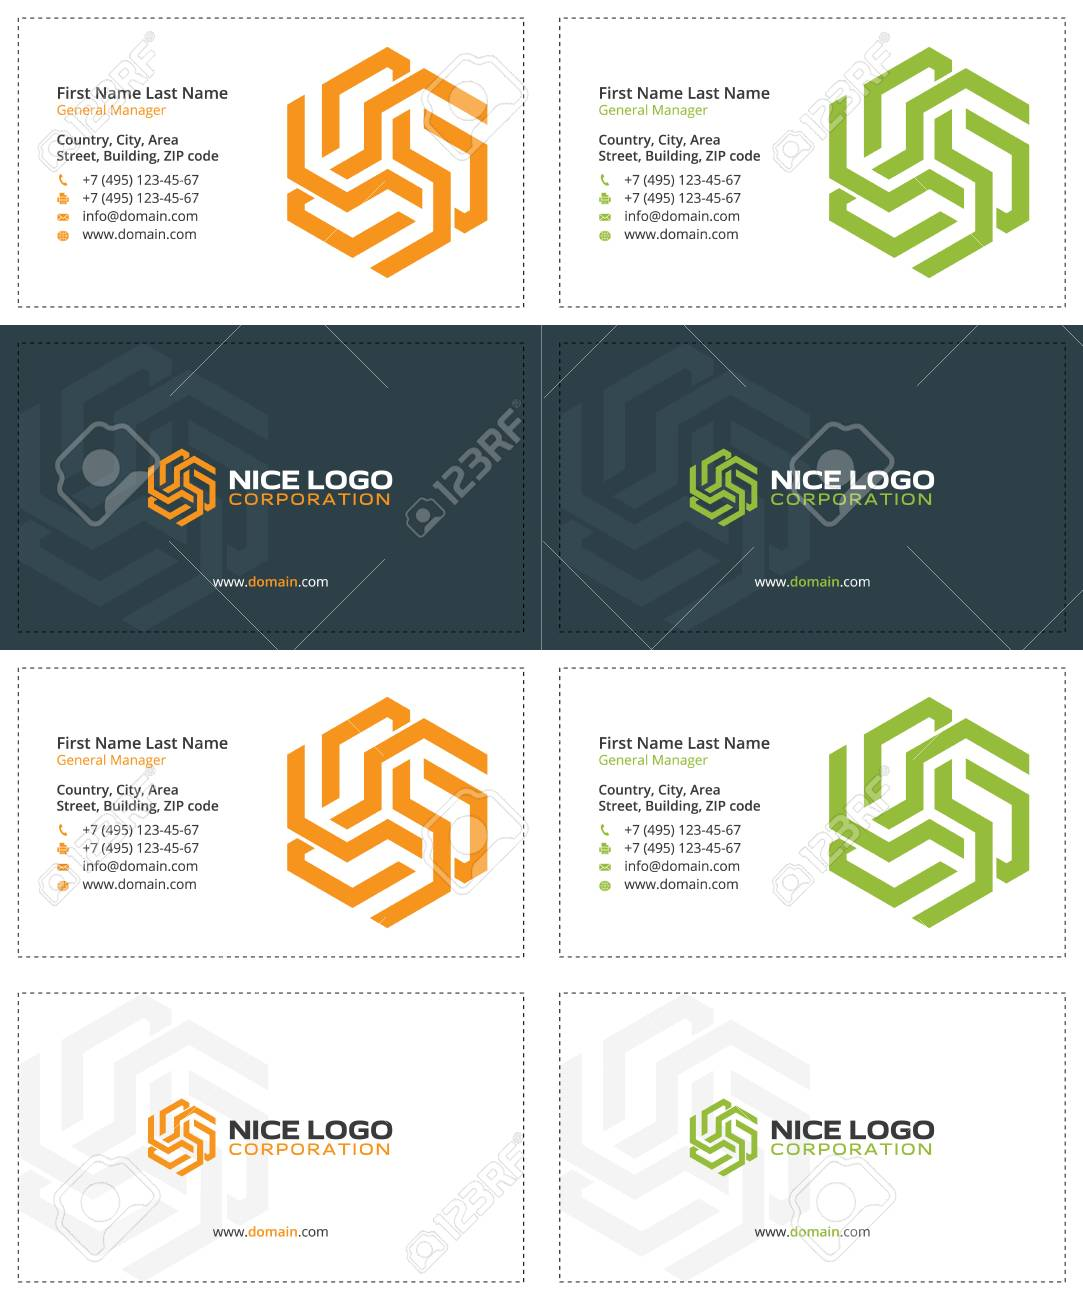 Solar energy business cards gray orange and green colors royalty solar energy business cards gray orange and green colors stock vector 68475330 reheart Images